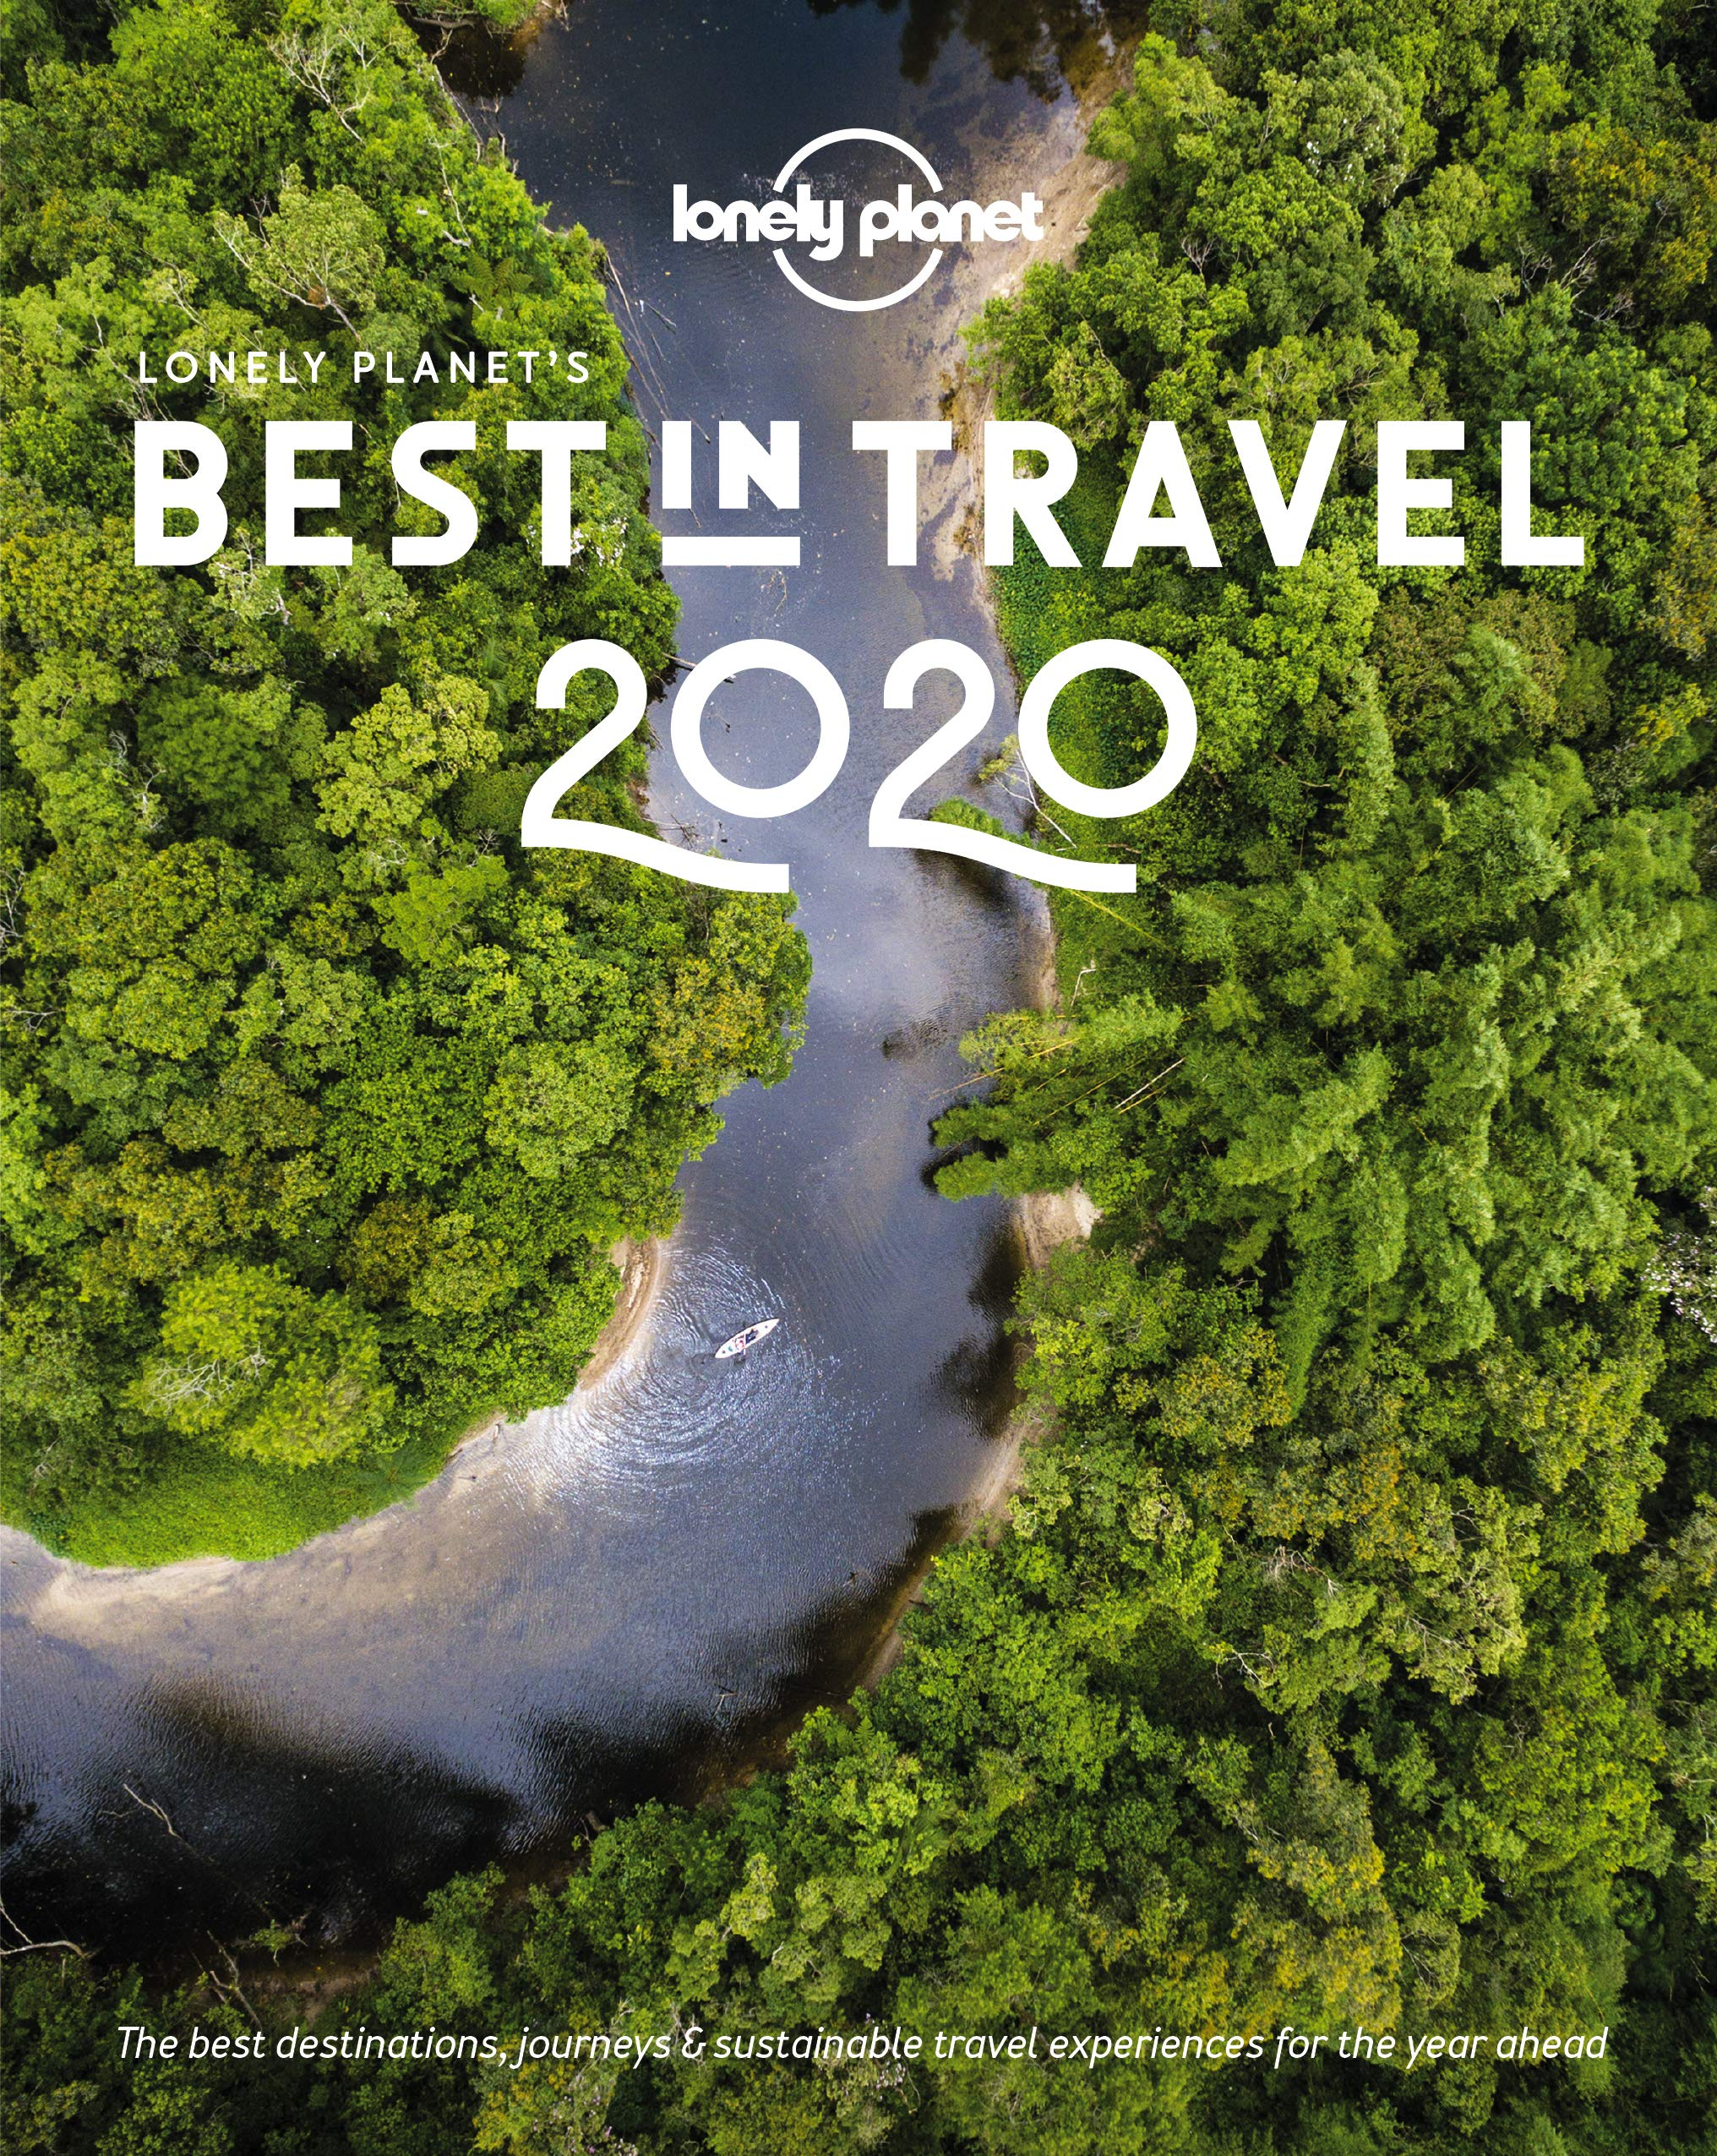 Best Seller Books 2020.Lonely Planet S Best In Travel 2020 Lonely Planet